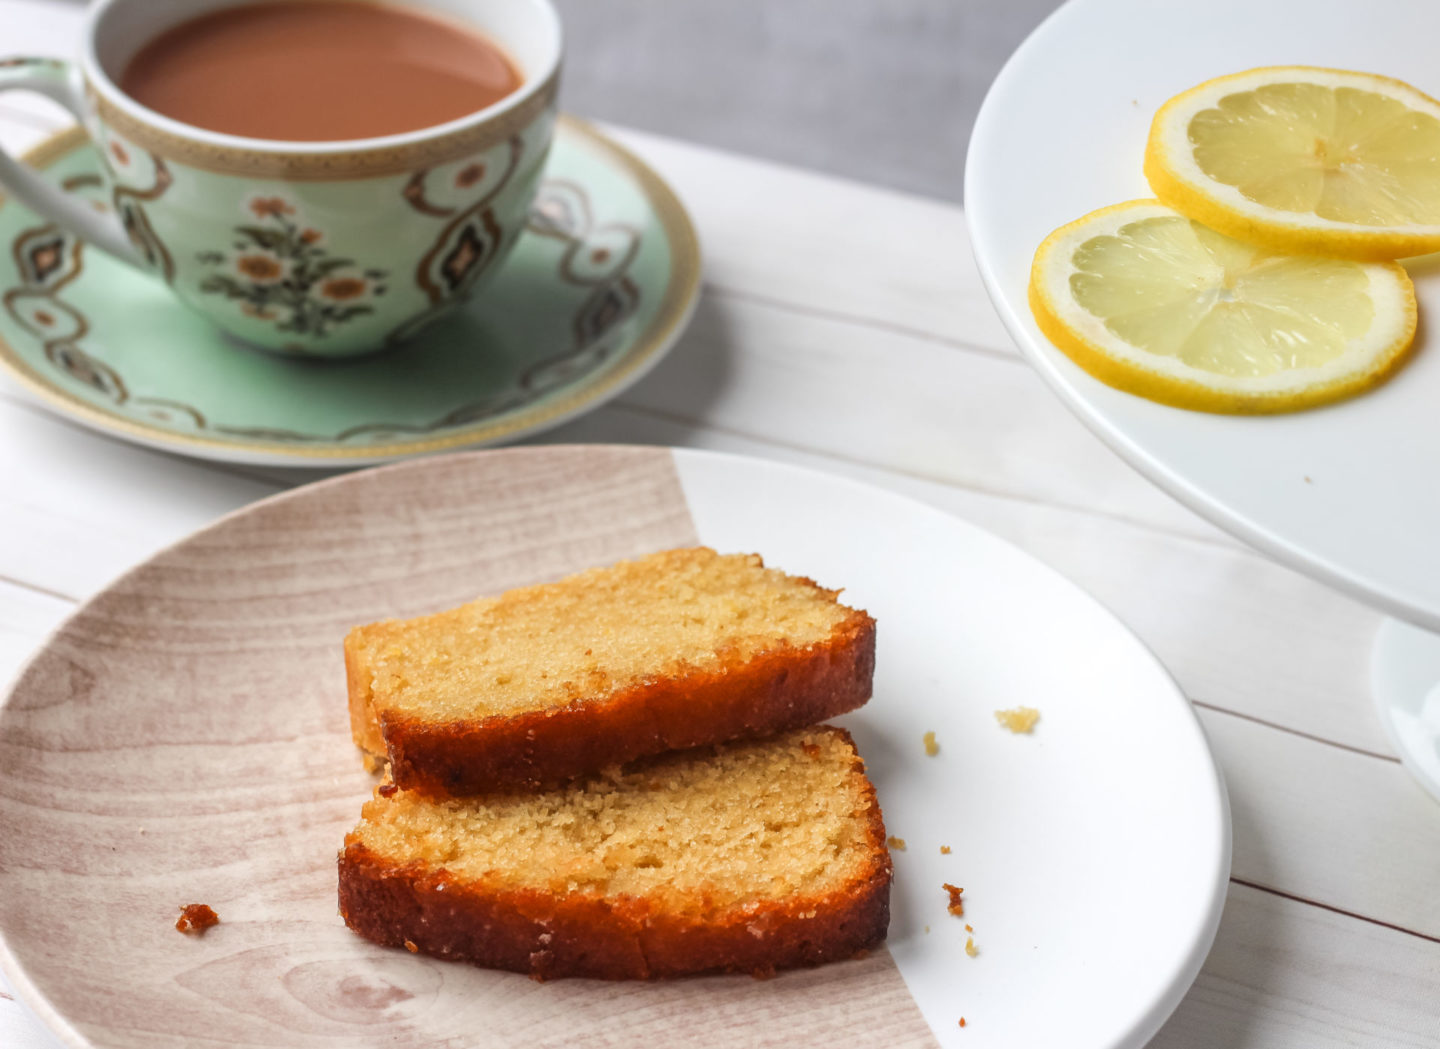 slices of lemon drizzle loaf cake with teacup and lemon slices